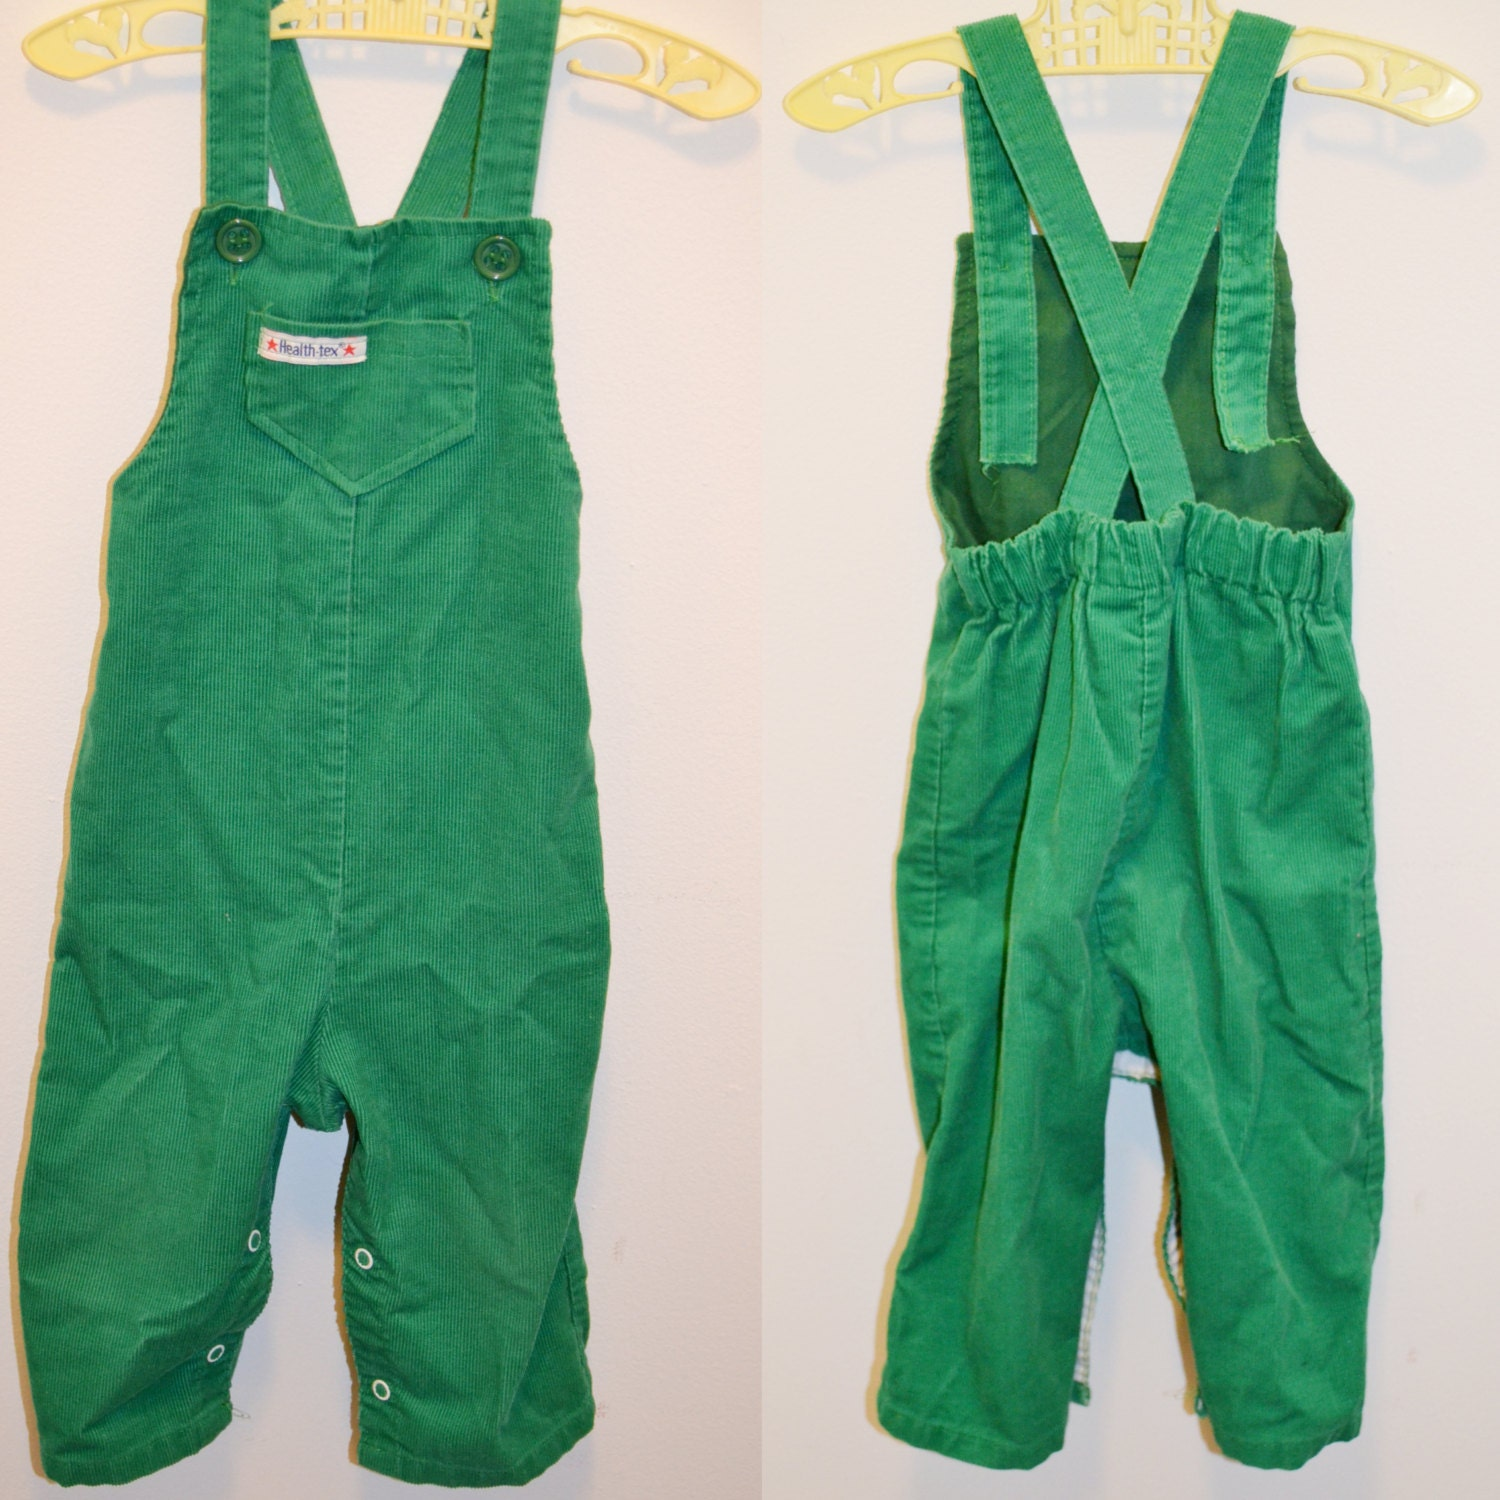 80s healthtex corduroy overalls green 24 months by blancobros